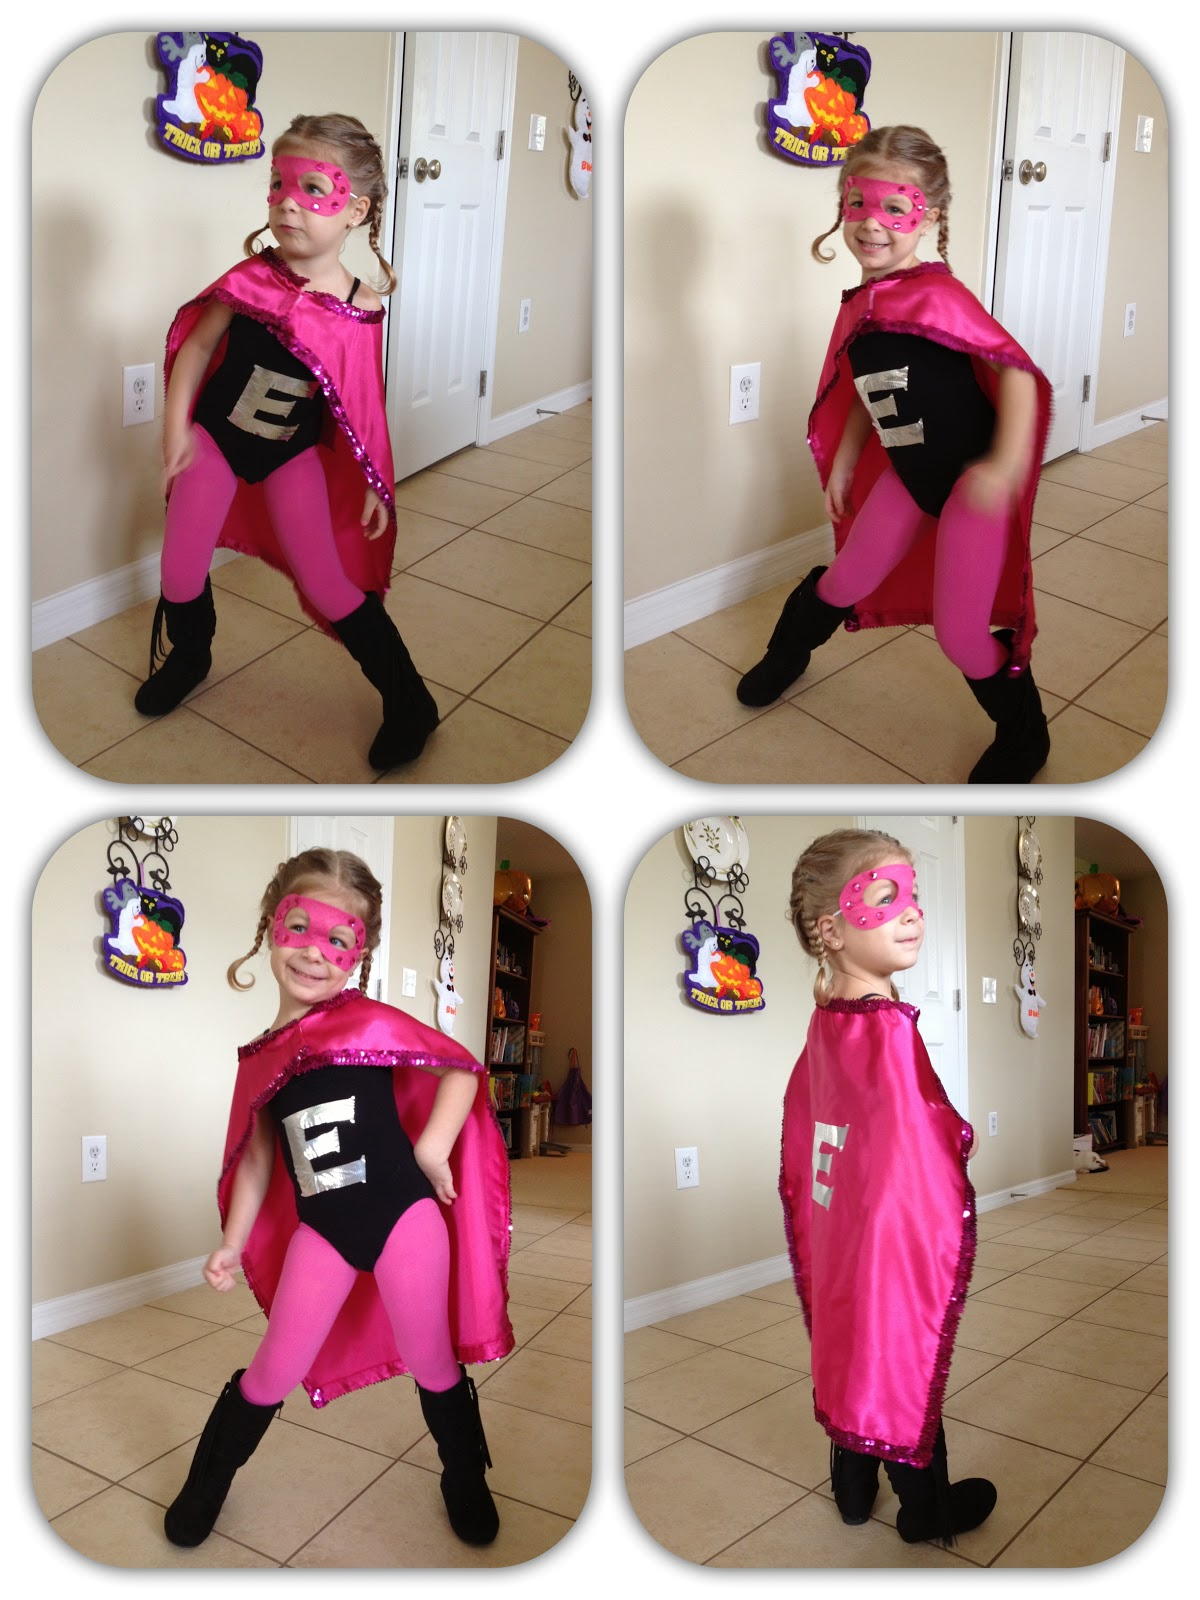 Make Your Own Superhero Costume Ideas Kid Crave 882815 - ginkgobilobahelp.info  sc 1 th 259 & Make Your Own Superhero Costume Ideas Kid Crave 882815 ...